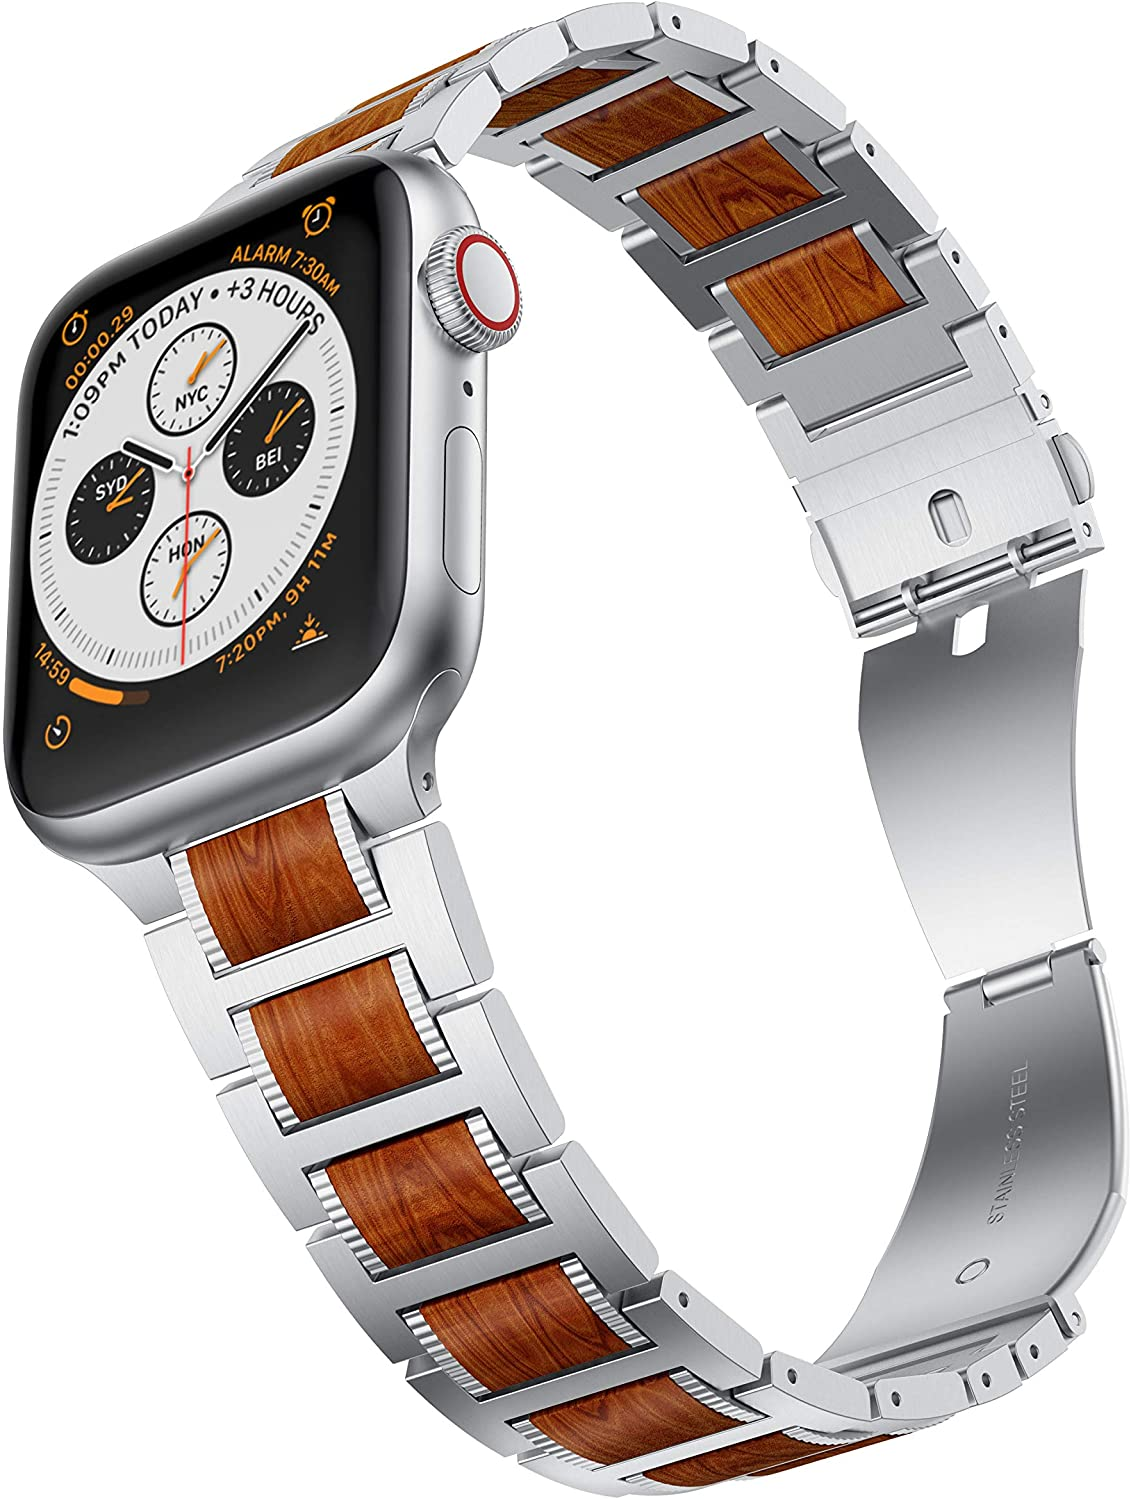 Red Sandalwood Apple Watch Band Silver Buckle Clasp Strapsz Stainless Steel Metal Band for Apple Watch